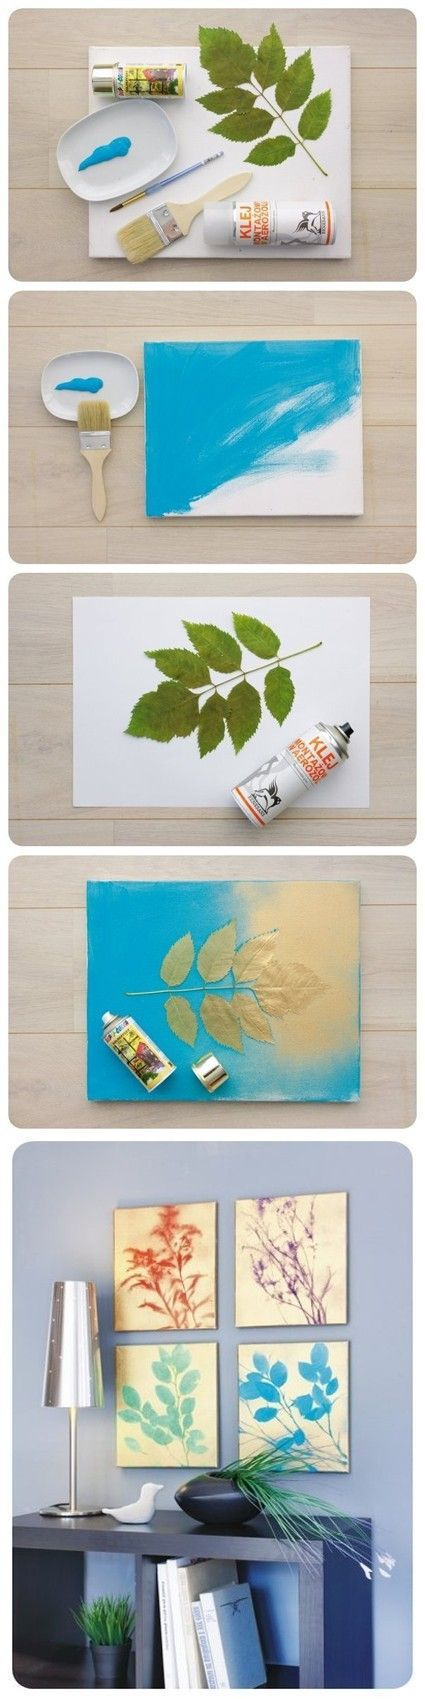 Spray paint leaves for wall decorations